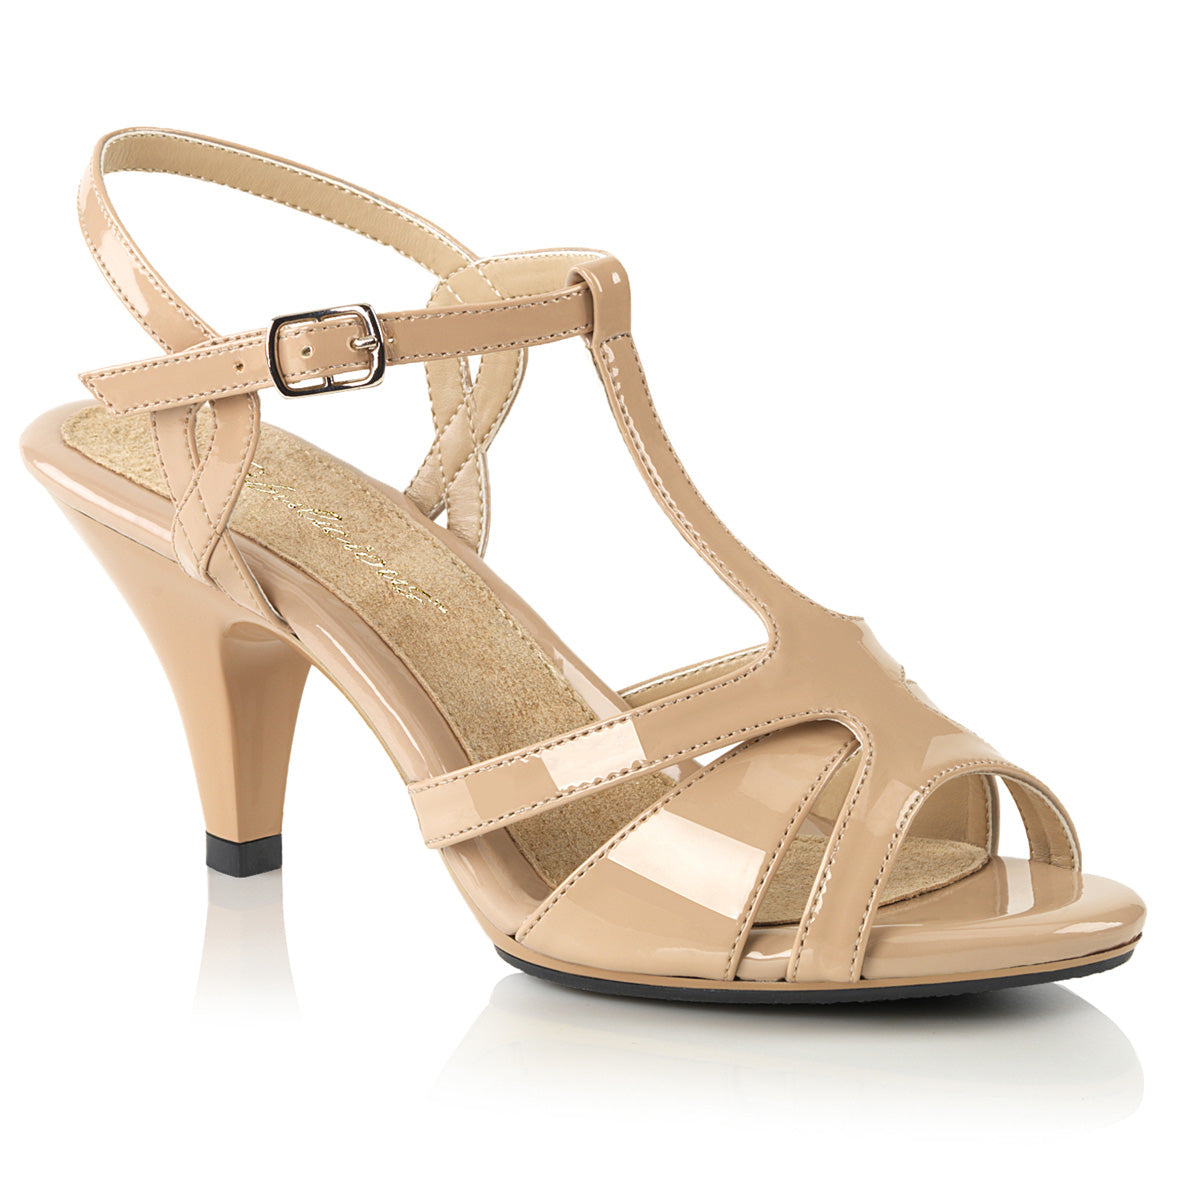 e8cd734e701 BELLE-322 Fabulicious Sexy Shoes 3 Inch Heel Ankle Strap T Strap ...